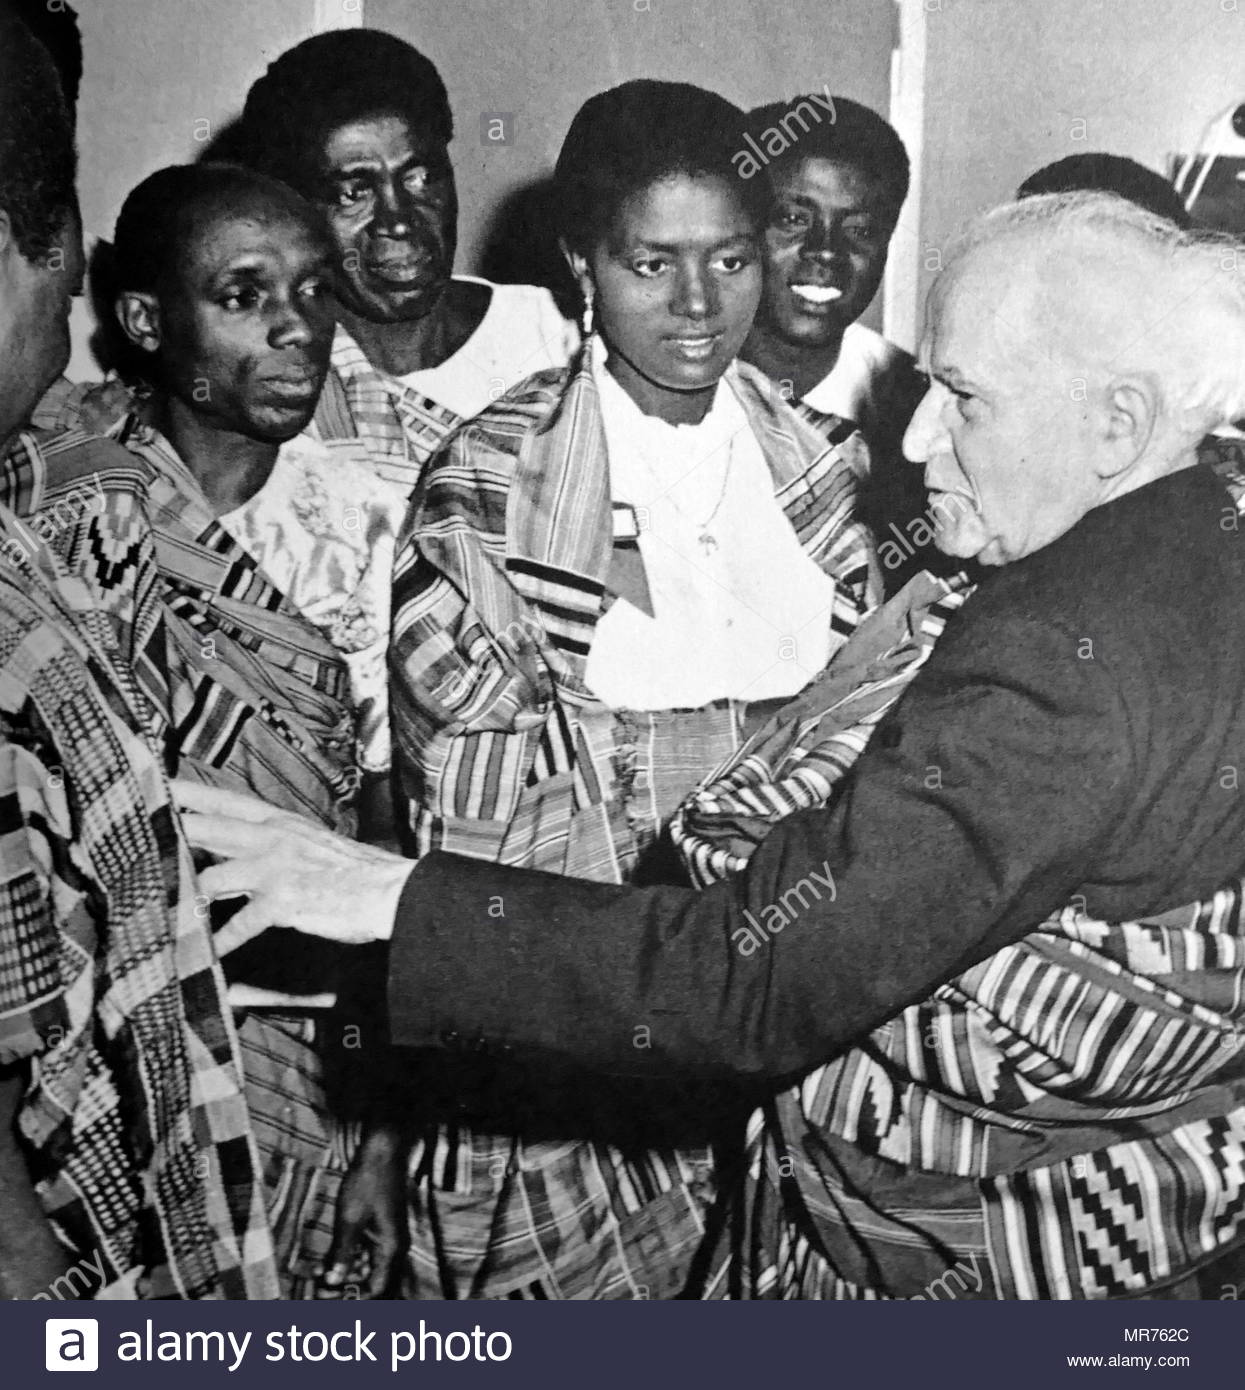 David Ben Gurion talks with Ghanaian students visiting Israel in 1961. David Ben-Gurion (1886-1973) was an Israeli Labour Politician and first Prime Minister of Israel. - Stock Image